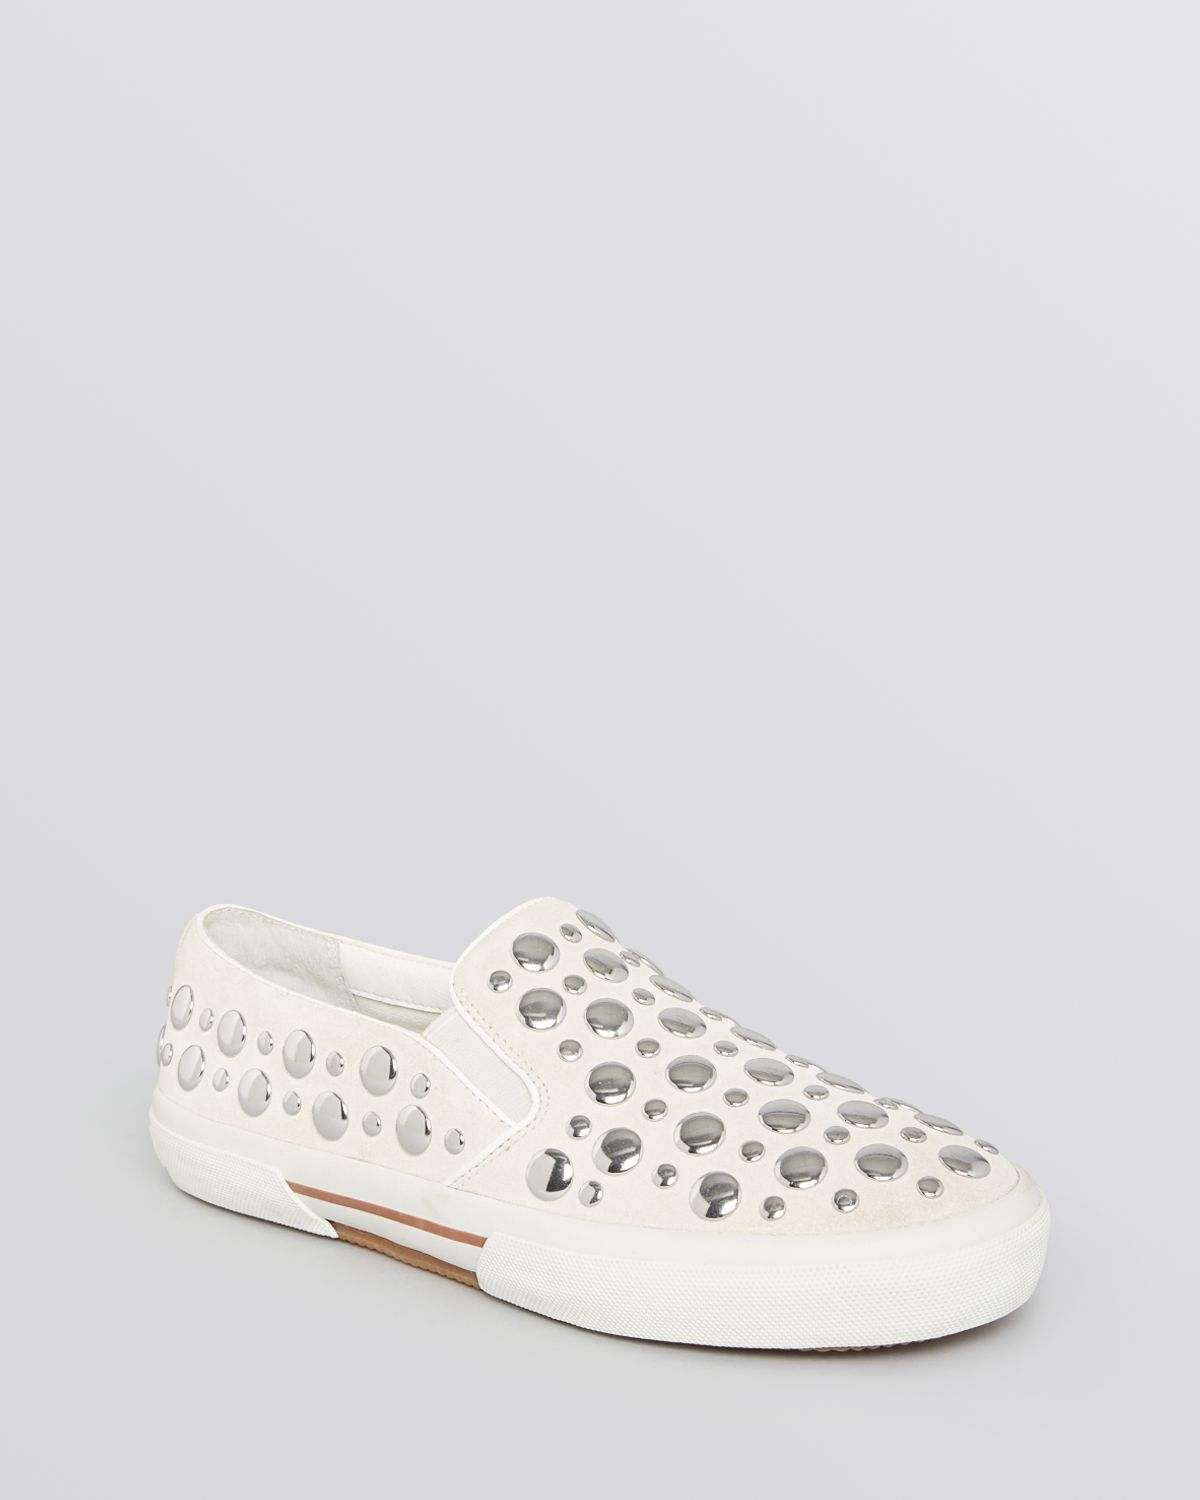 cd159a5bdbc7 Lyst - MICHAEL Michael Kors Slip On Sneakers Boerum Studded in White